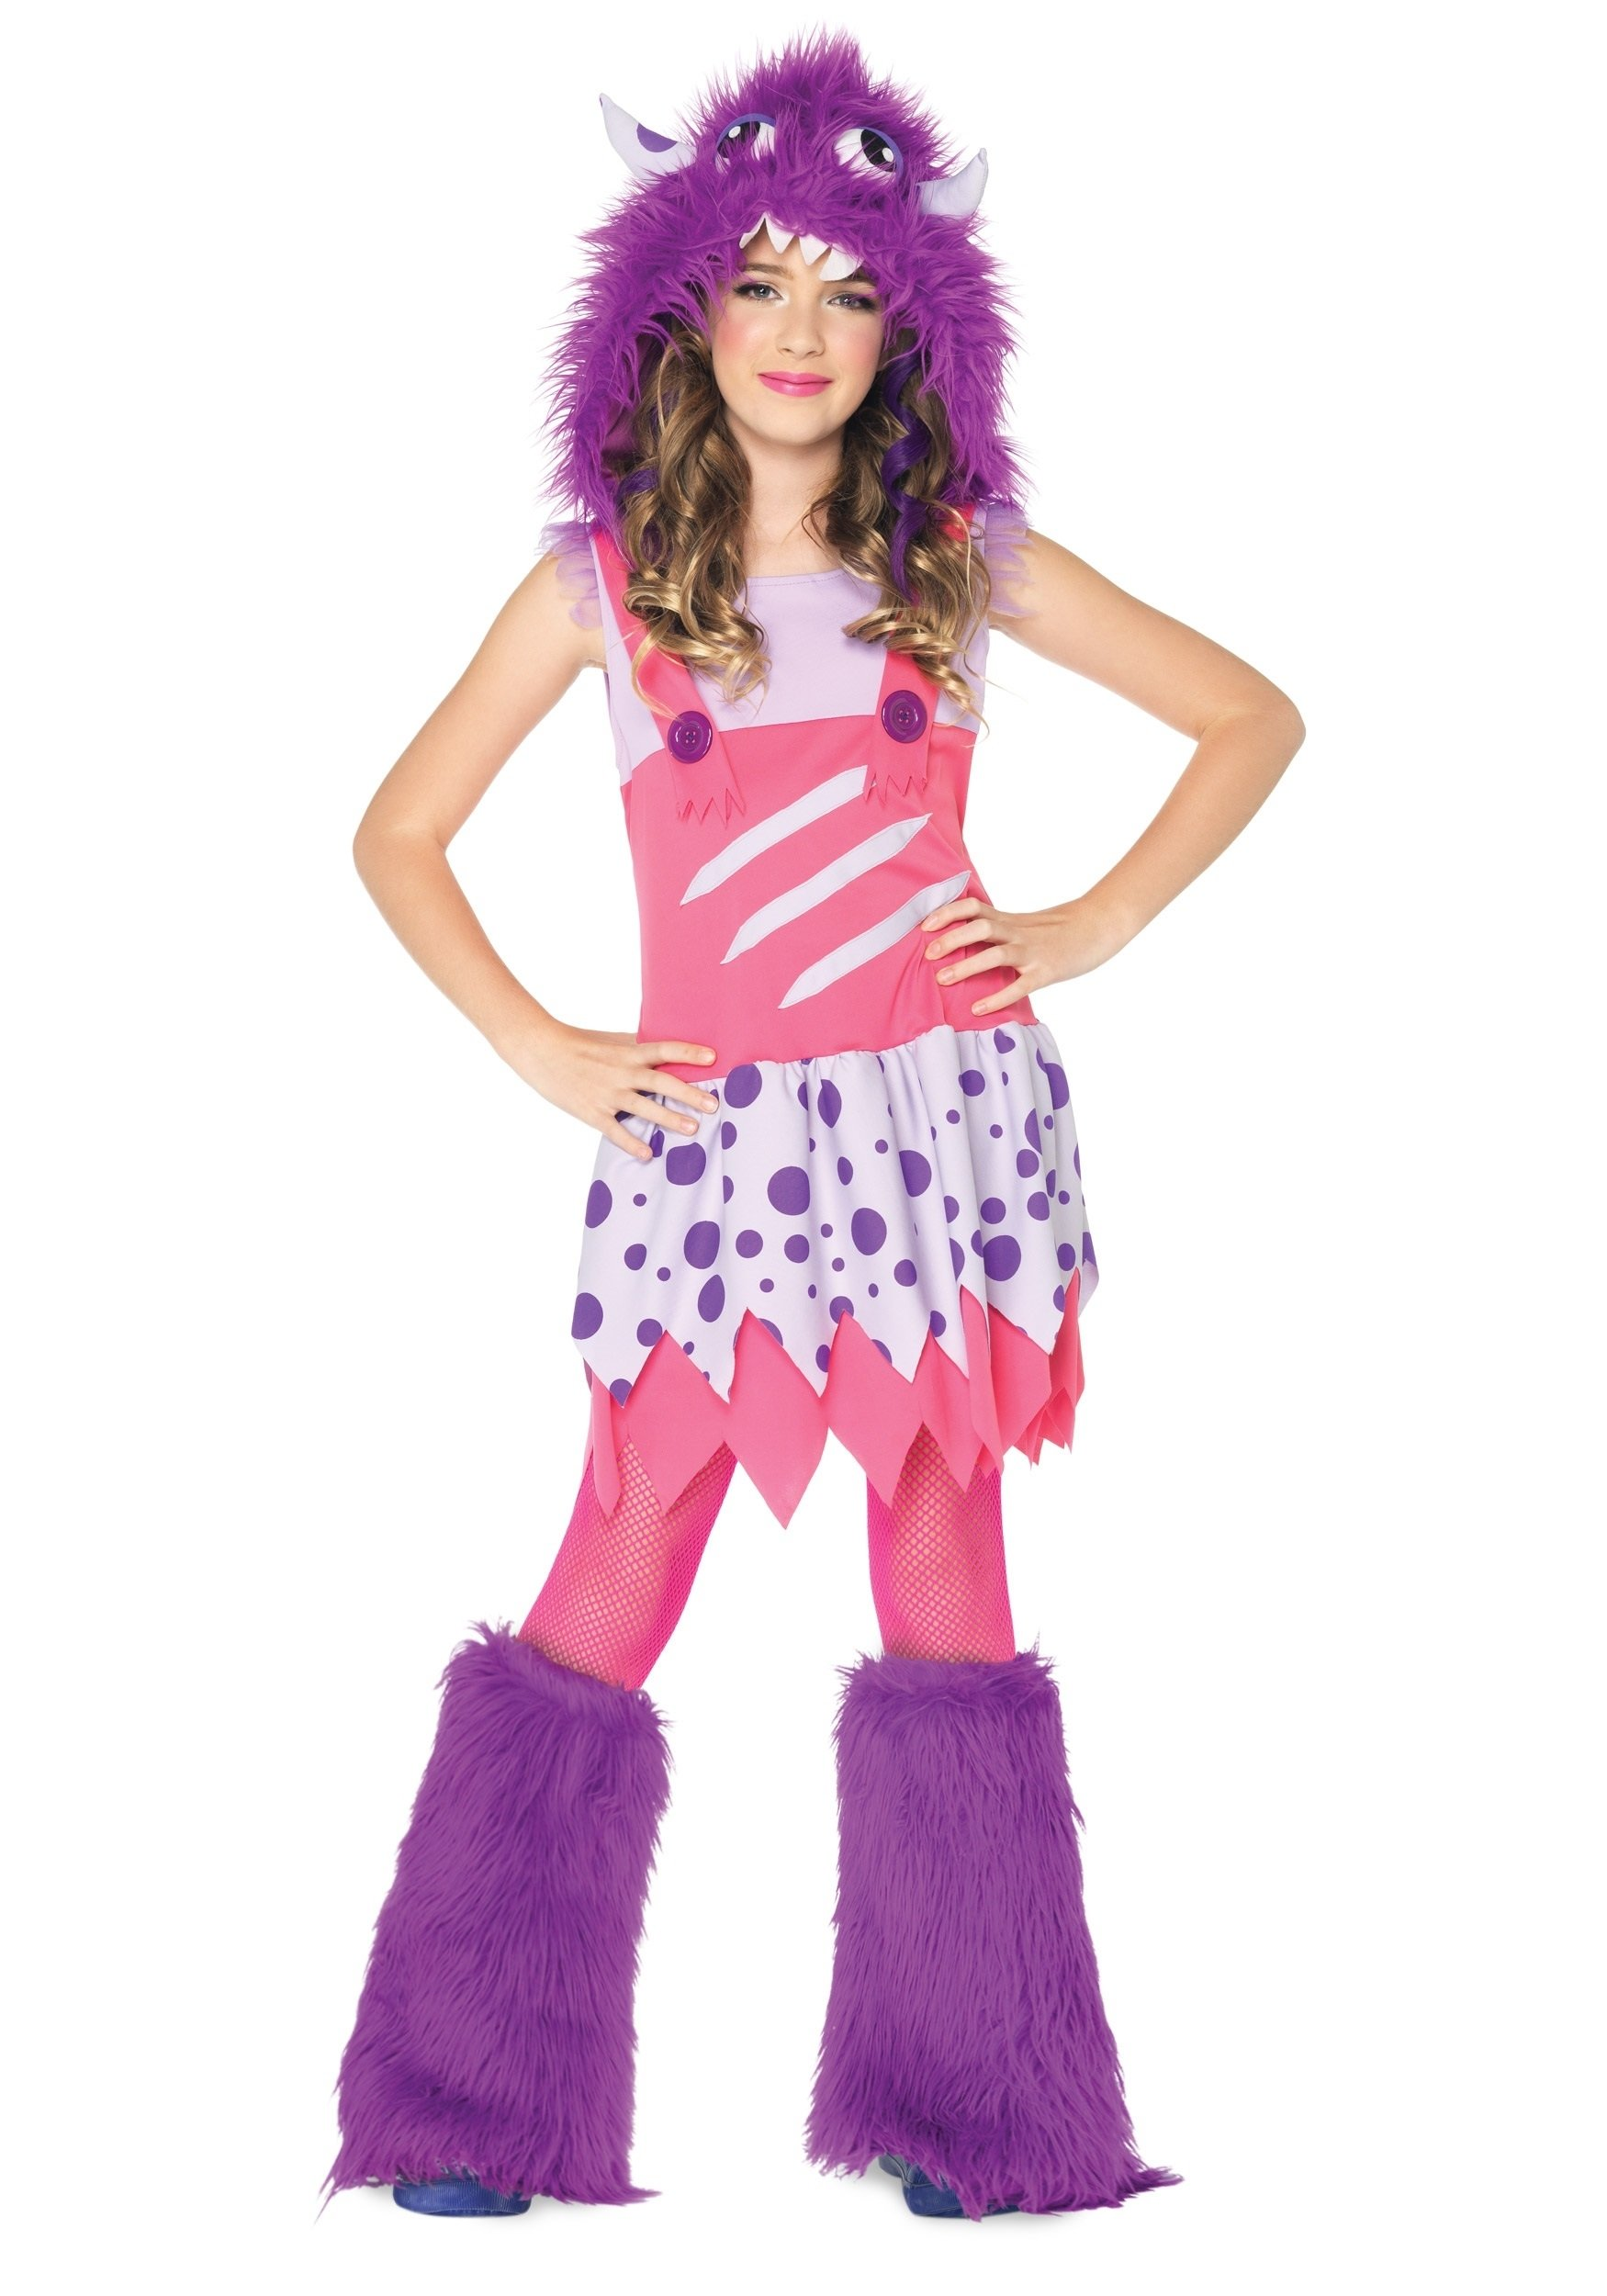 10 Fantastic Teenage Girls Halloween Costume Ideas girls furball monster costume halloween costume ideas 2016 7 2020